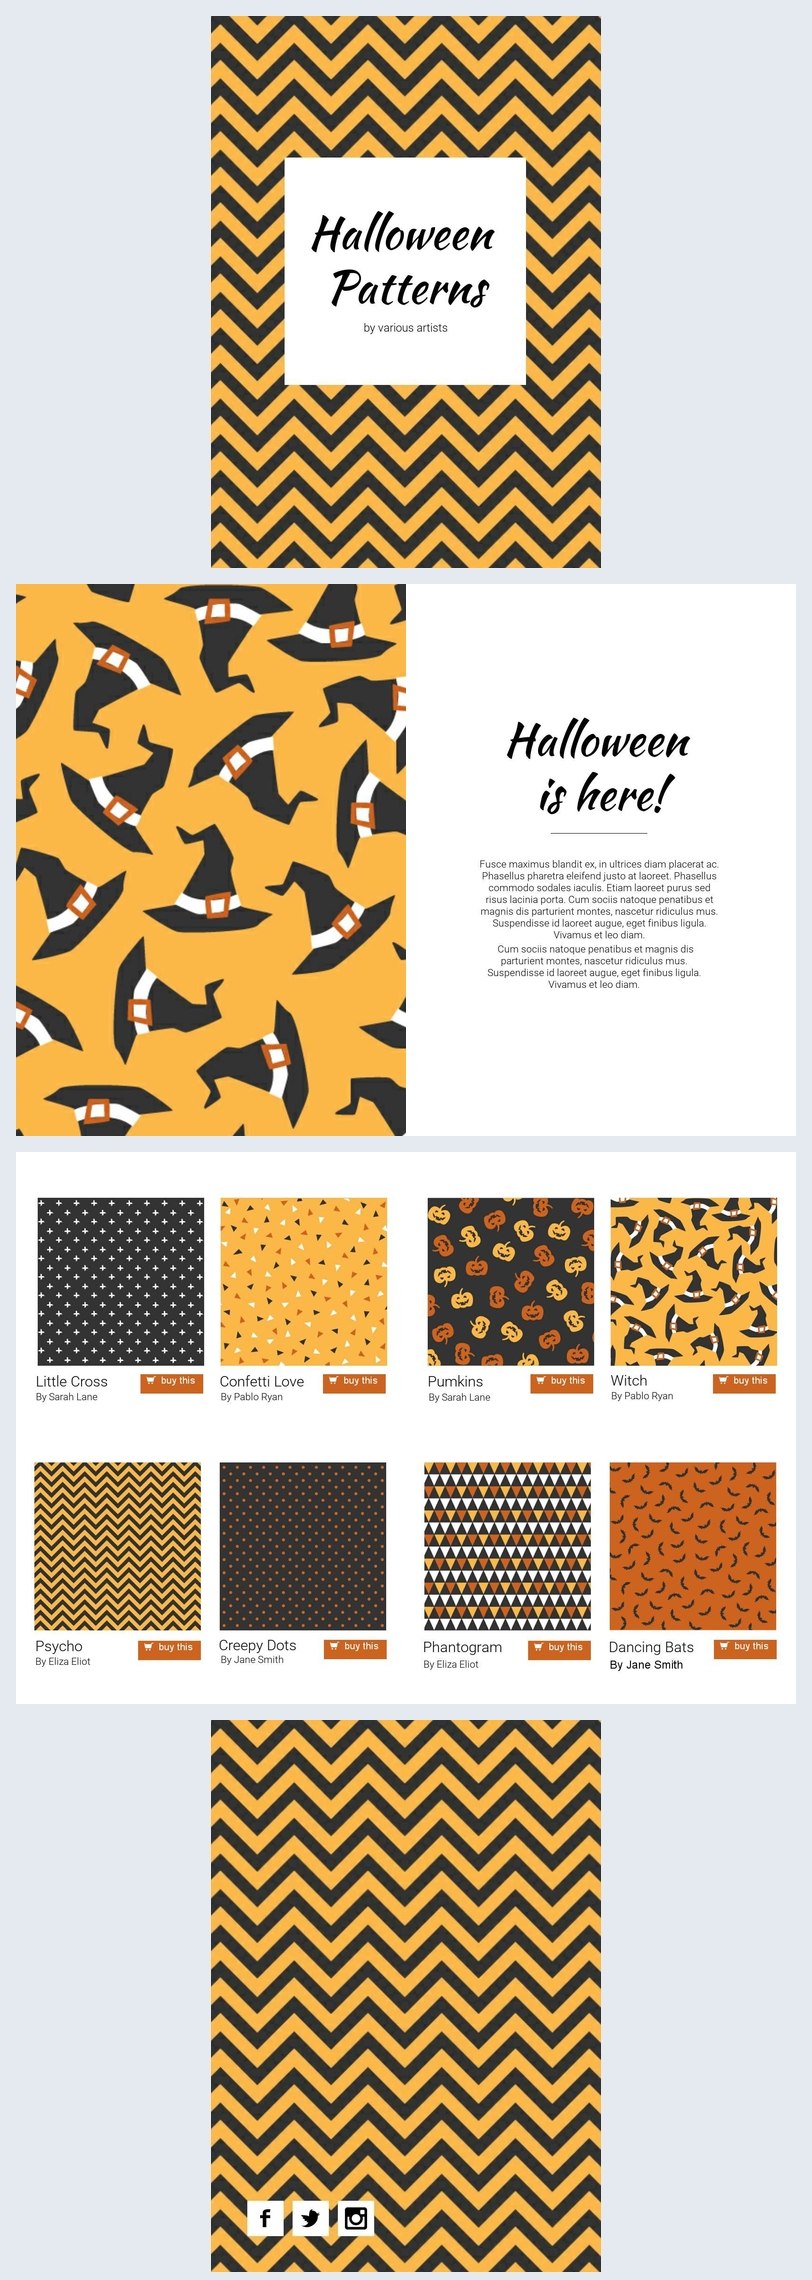 Halloween Patterns Magazine Design